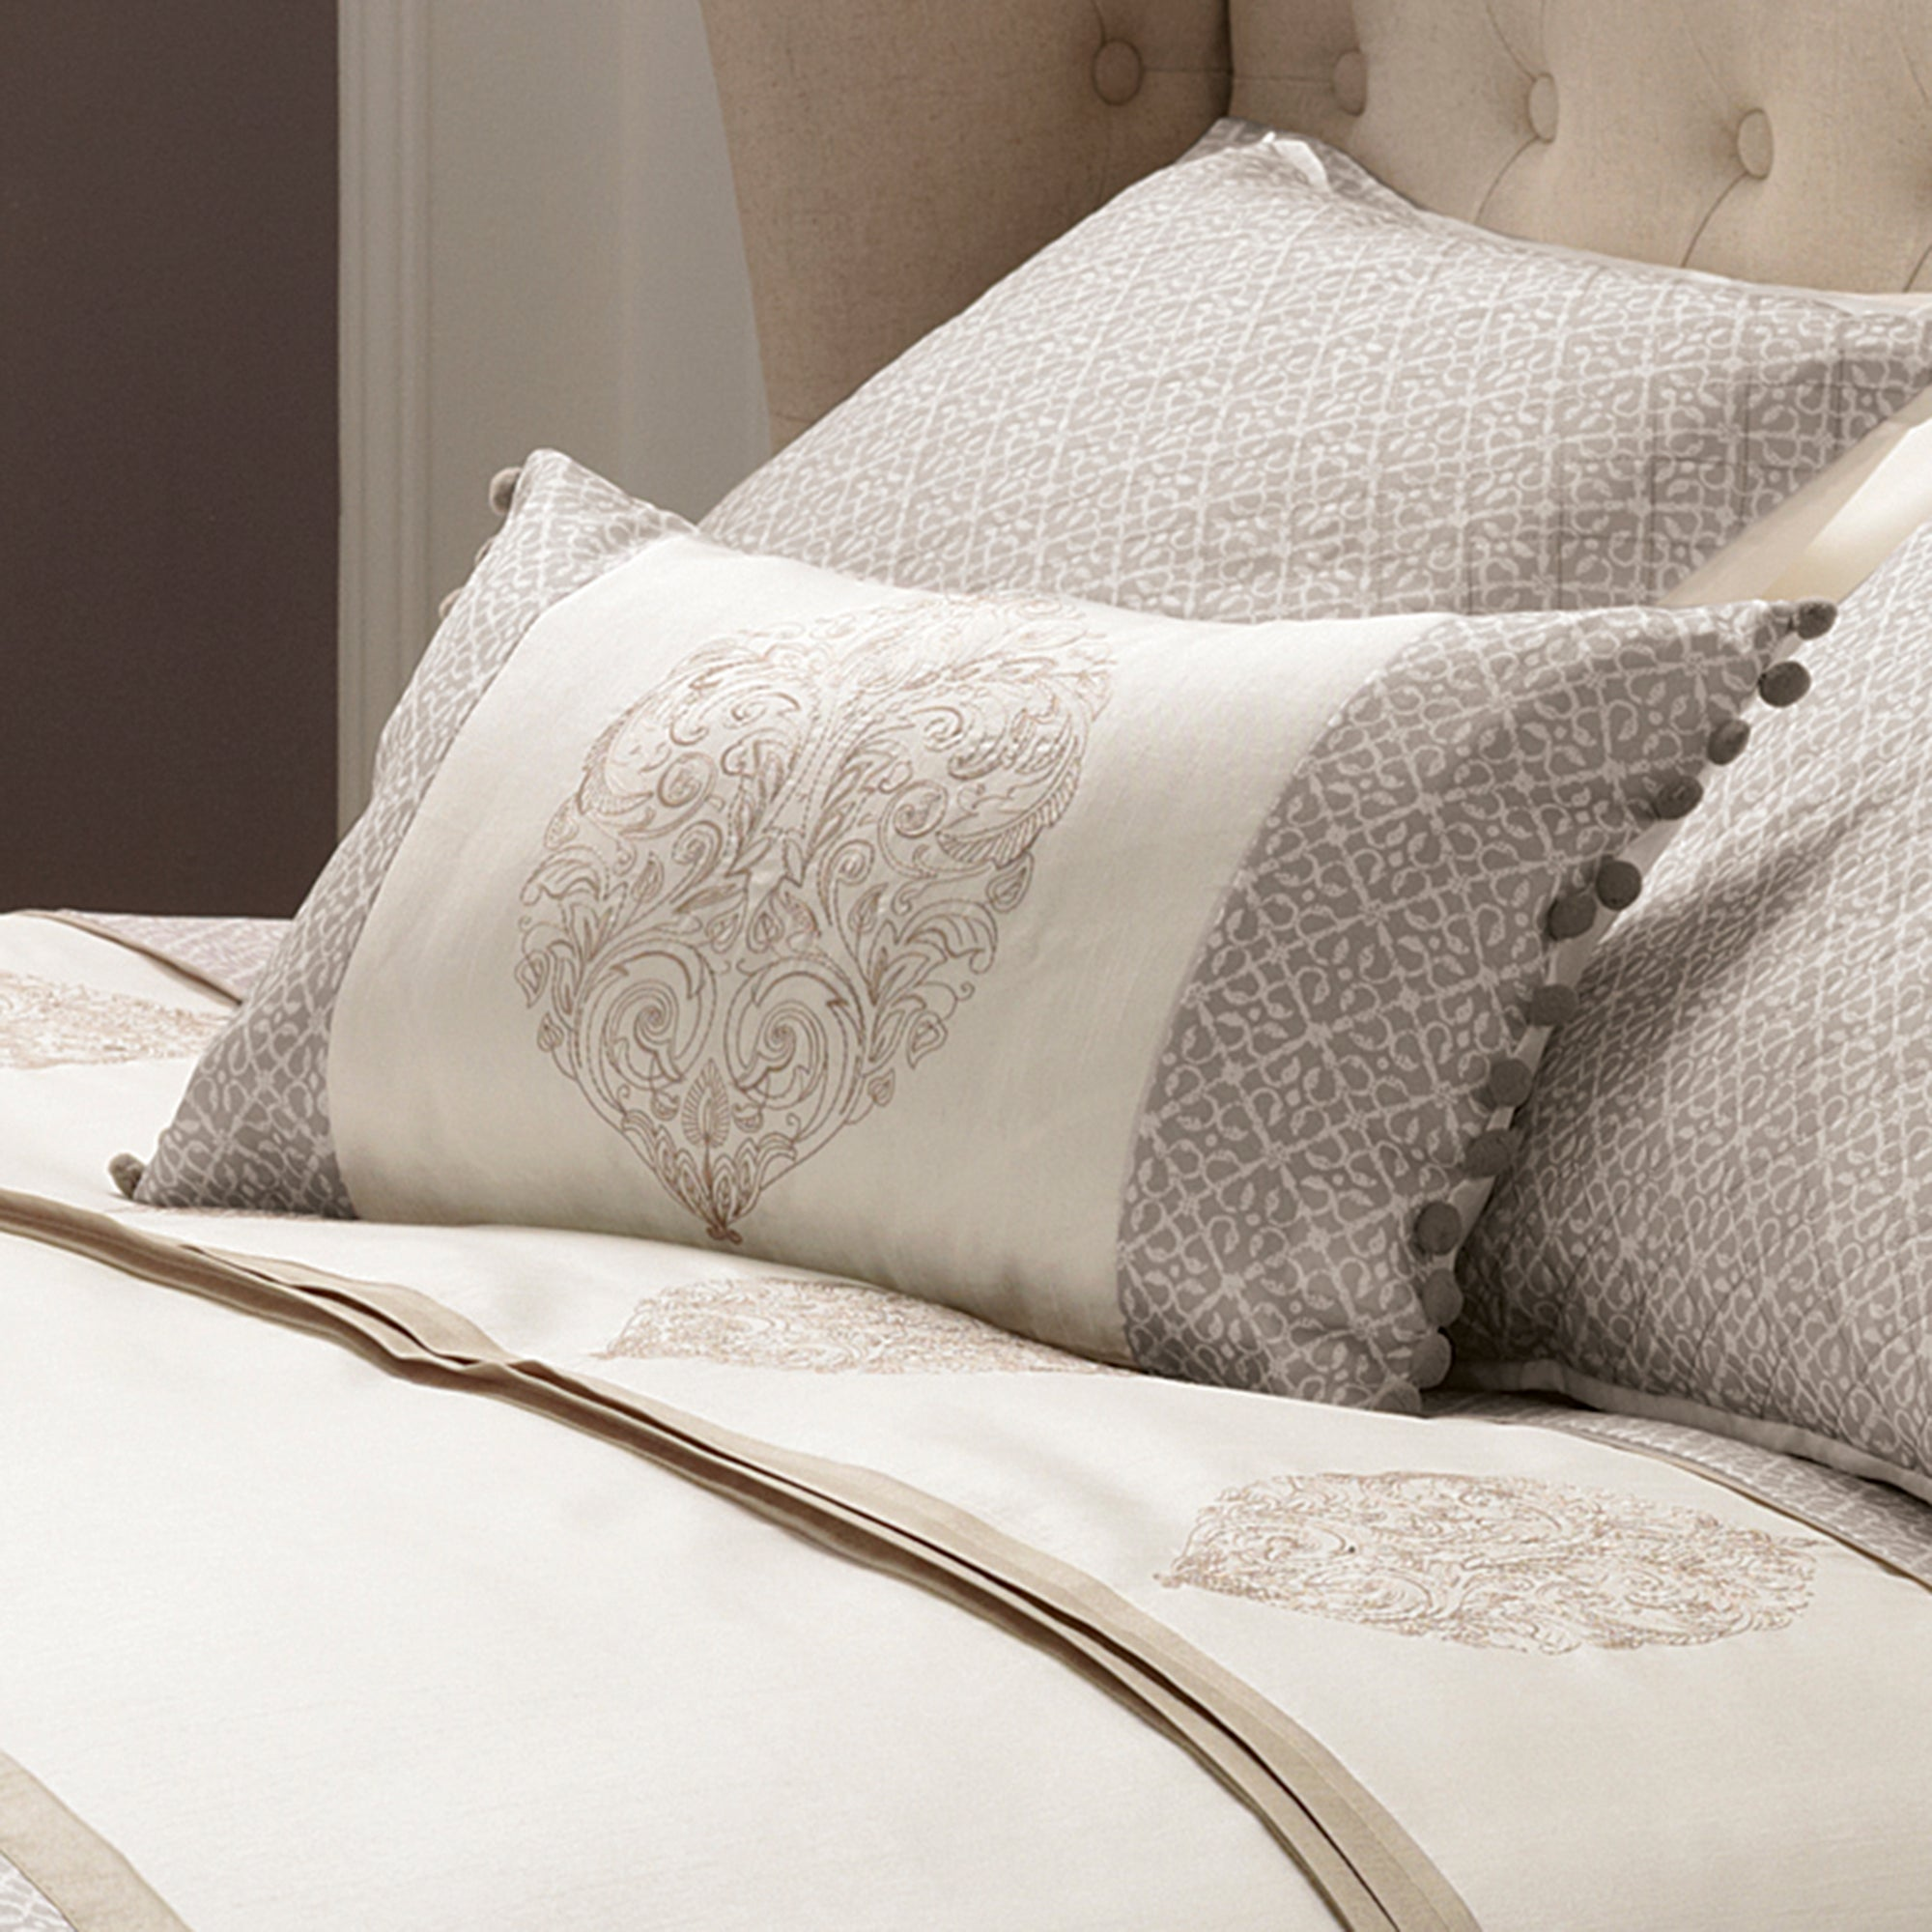 Gold Filigree Bedlinen Collection